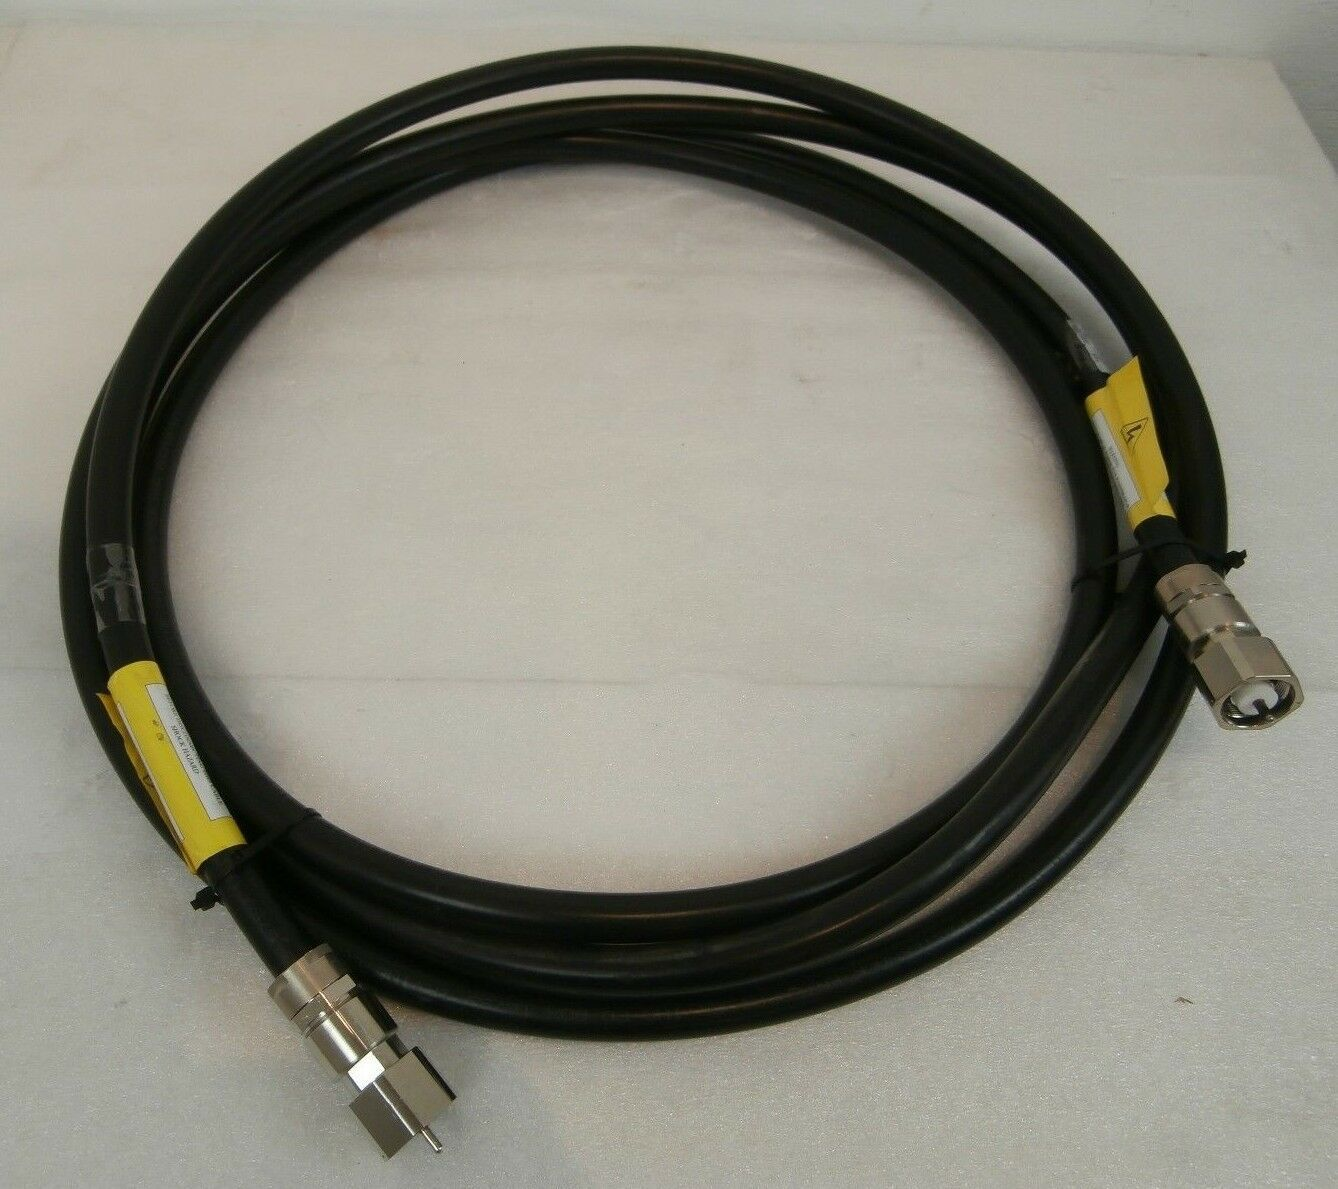 RFPP RF Power Products 0251-0331-3 RF Cable 24 Foot Alcatel 2460 Used Working